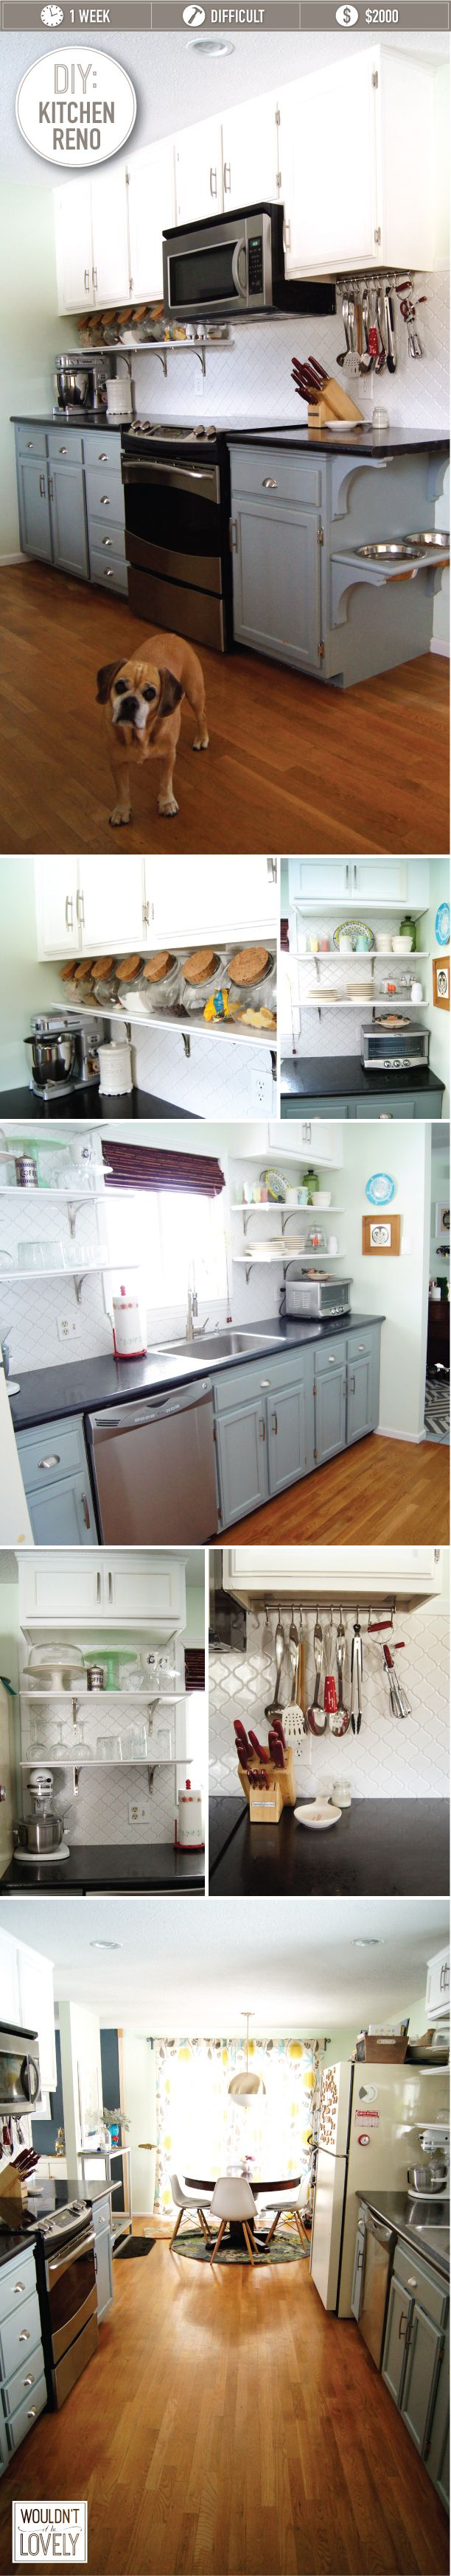 DIY Kitchen Renovation — Wouldn't it be Lovely